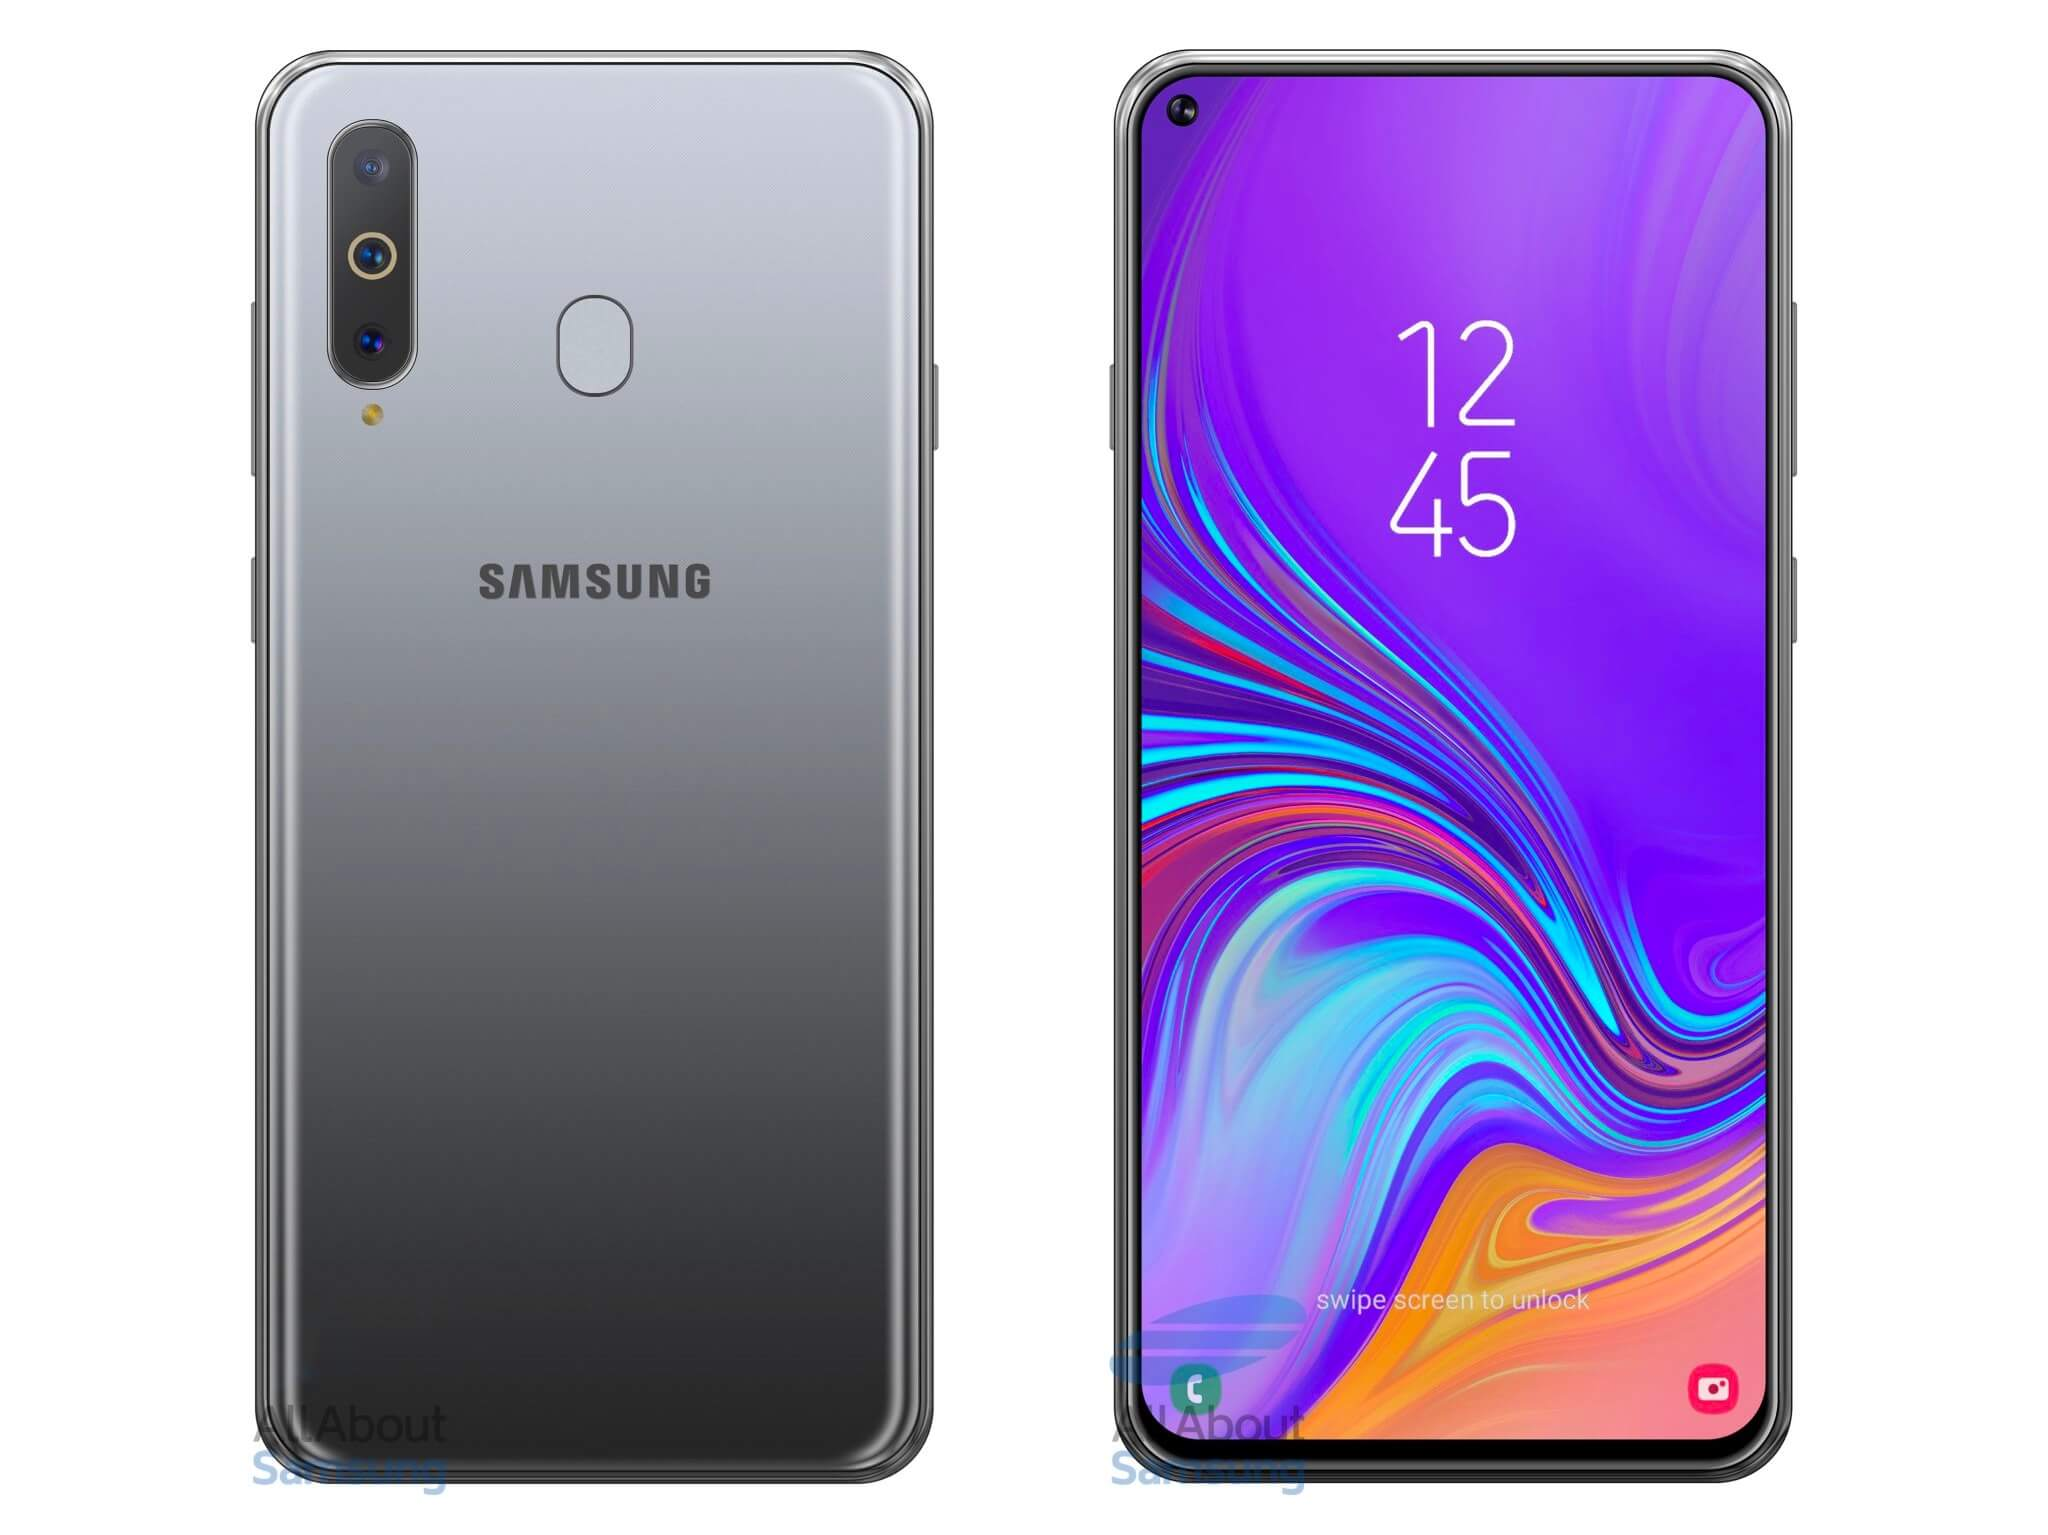 Samsung Galaxy A8s leaks before announcement, shows huge punch hole